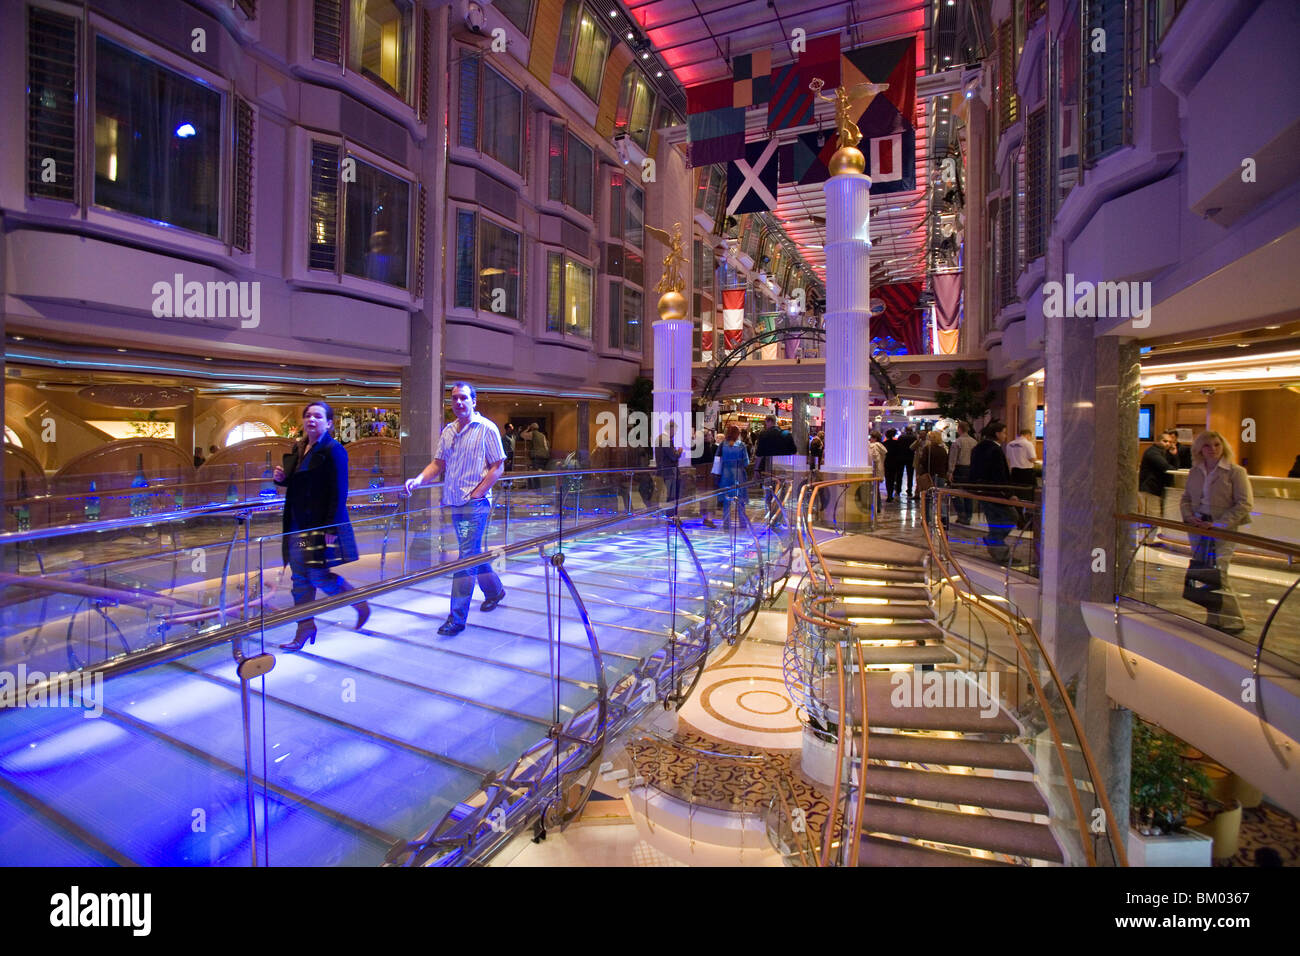 Royal Promenade On Deck 5 Freedom Of The Seas Cruise Ship Caribbean International Line